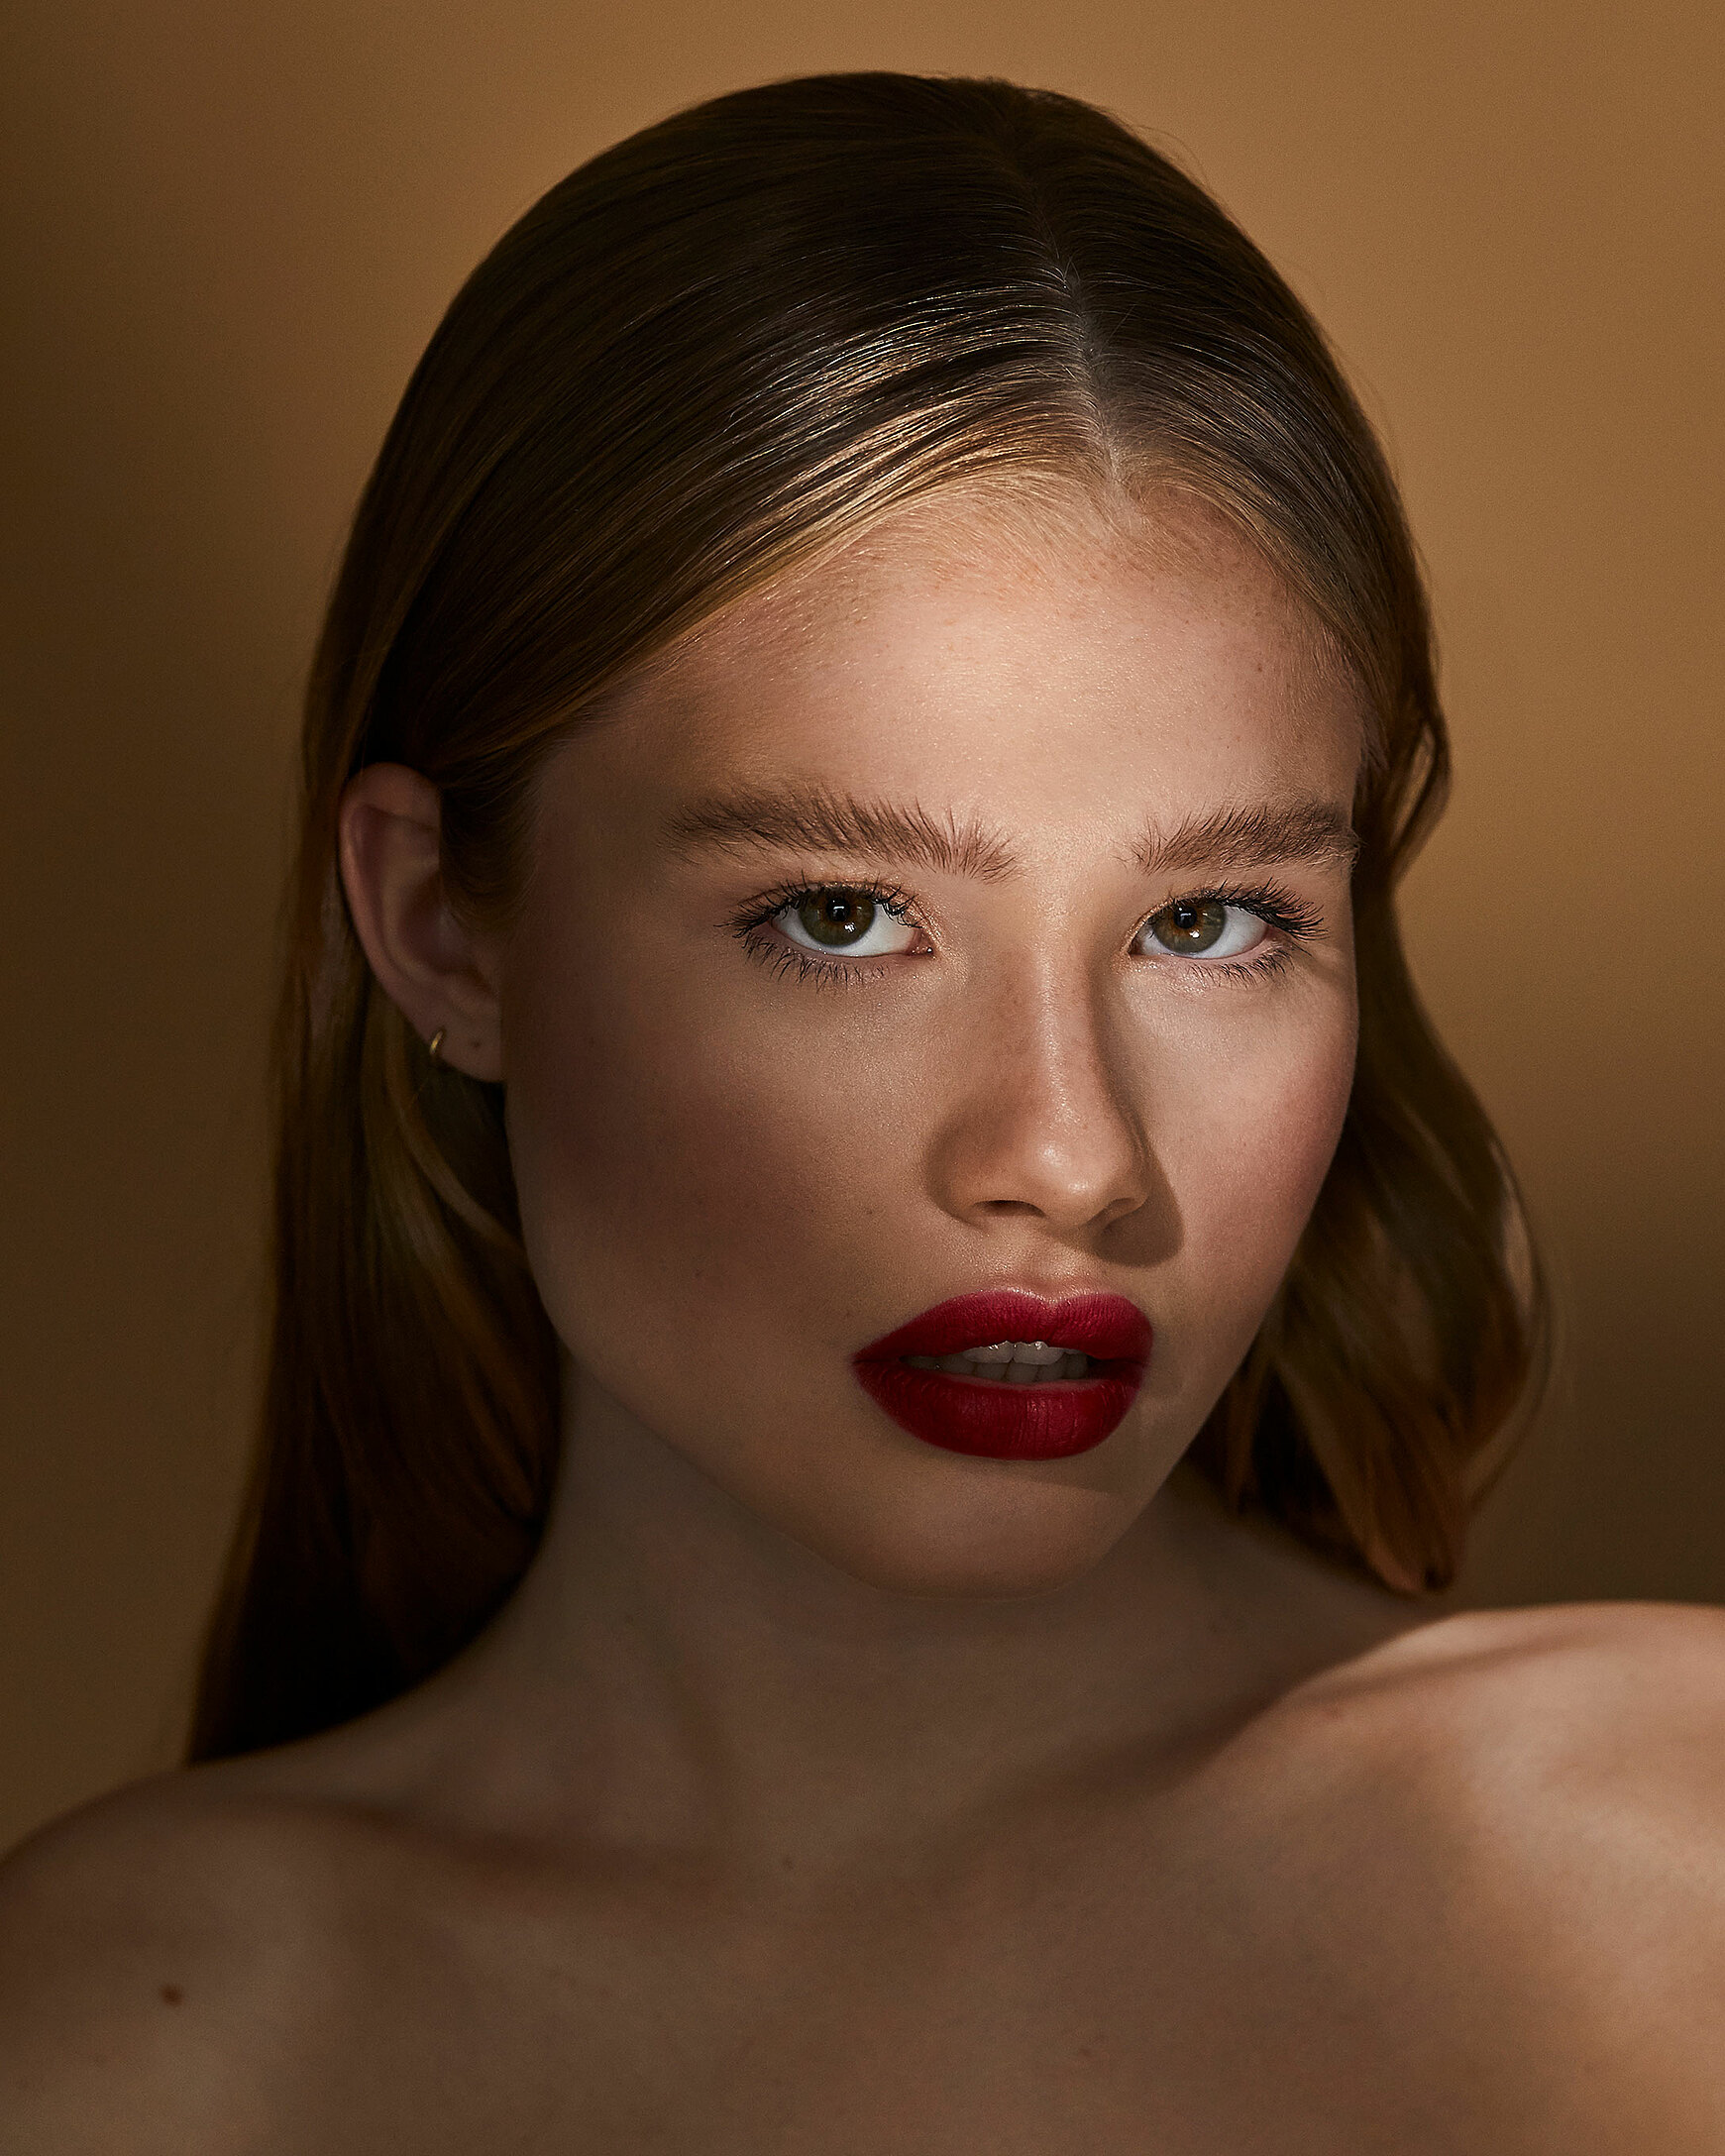 A female blonde model with red lips in a strong pose with sleek hairs